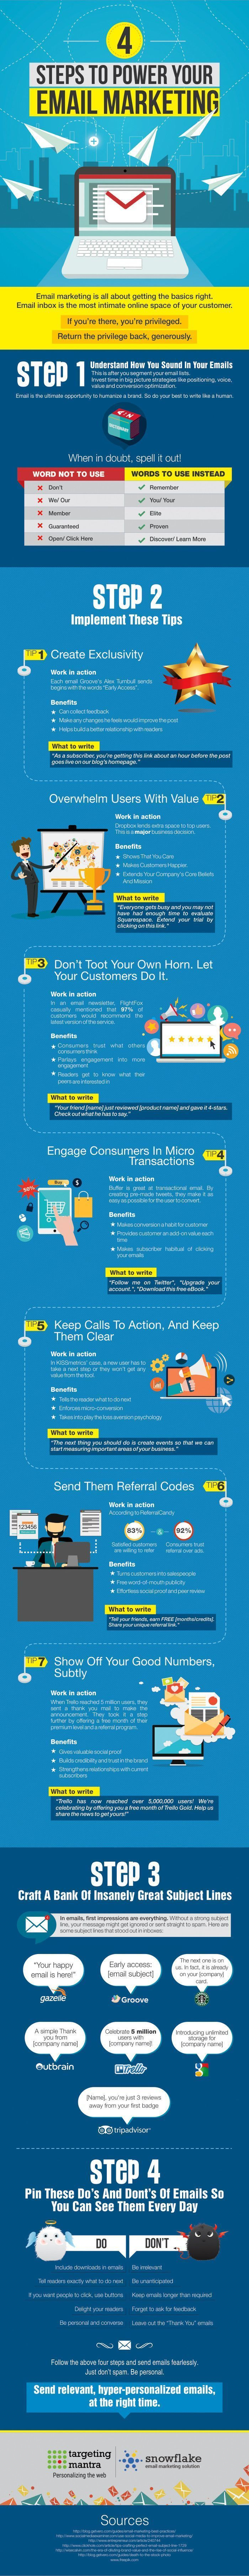 4 Steps to Power Your E-mail Marketing | #Infographic